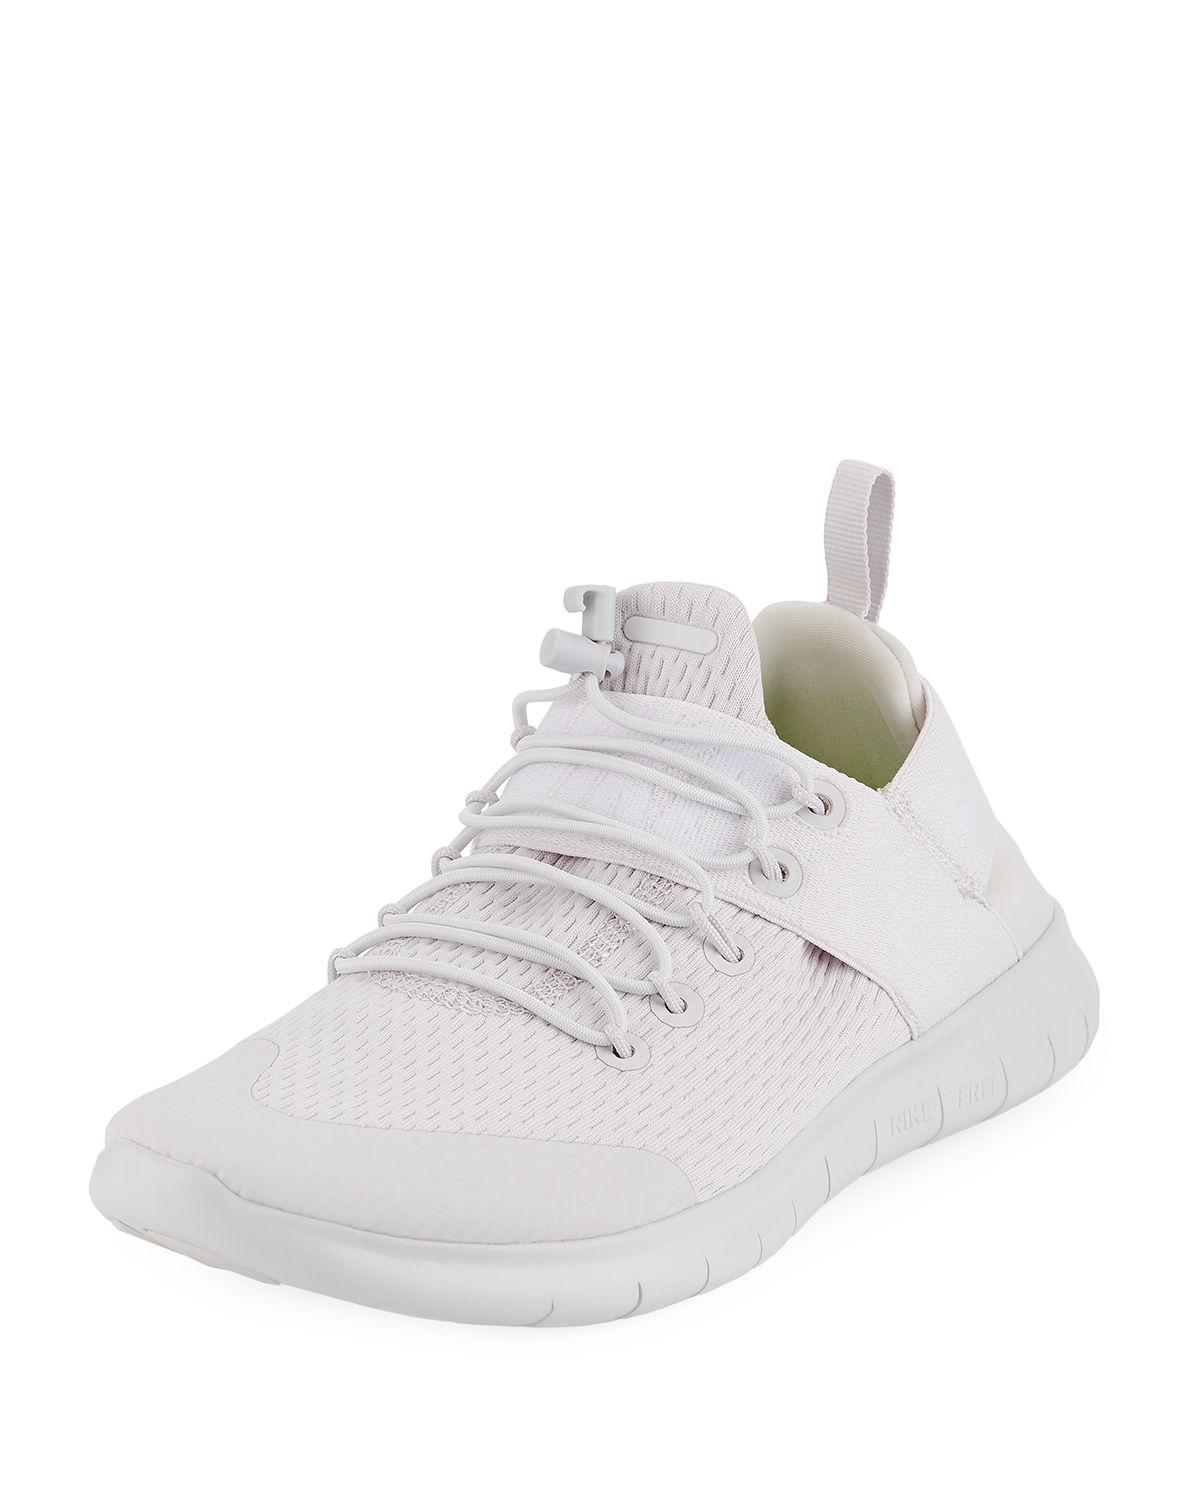 a5aacafa2d0 Lyst - Nike Free Run Commuter Sneakers in White for Men